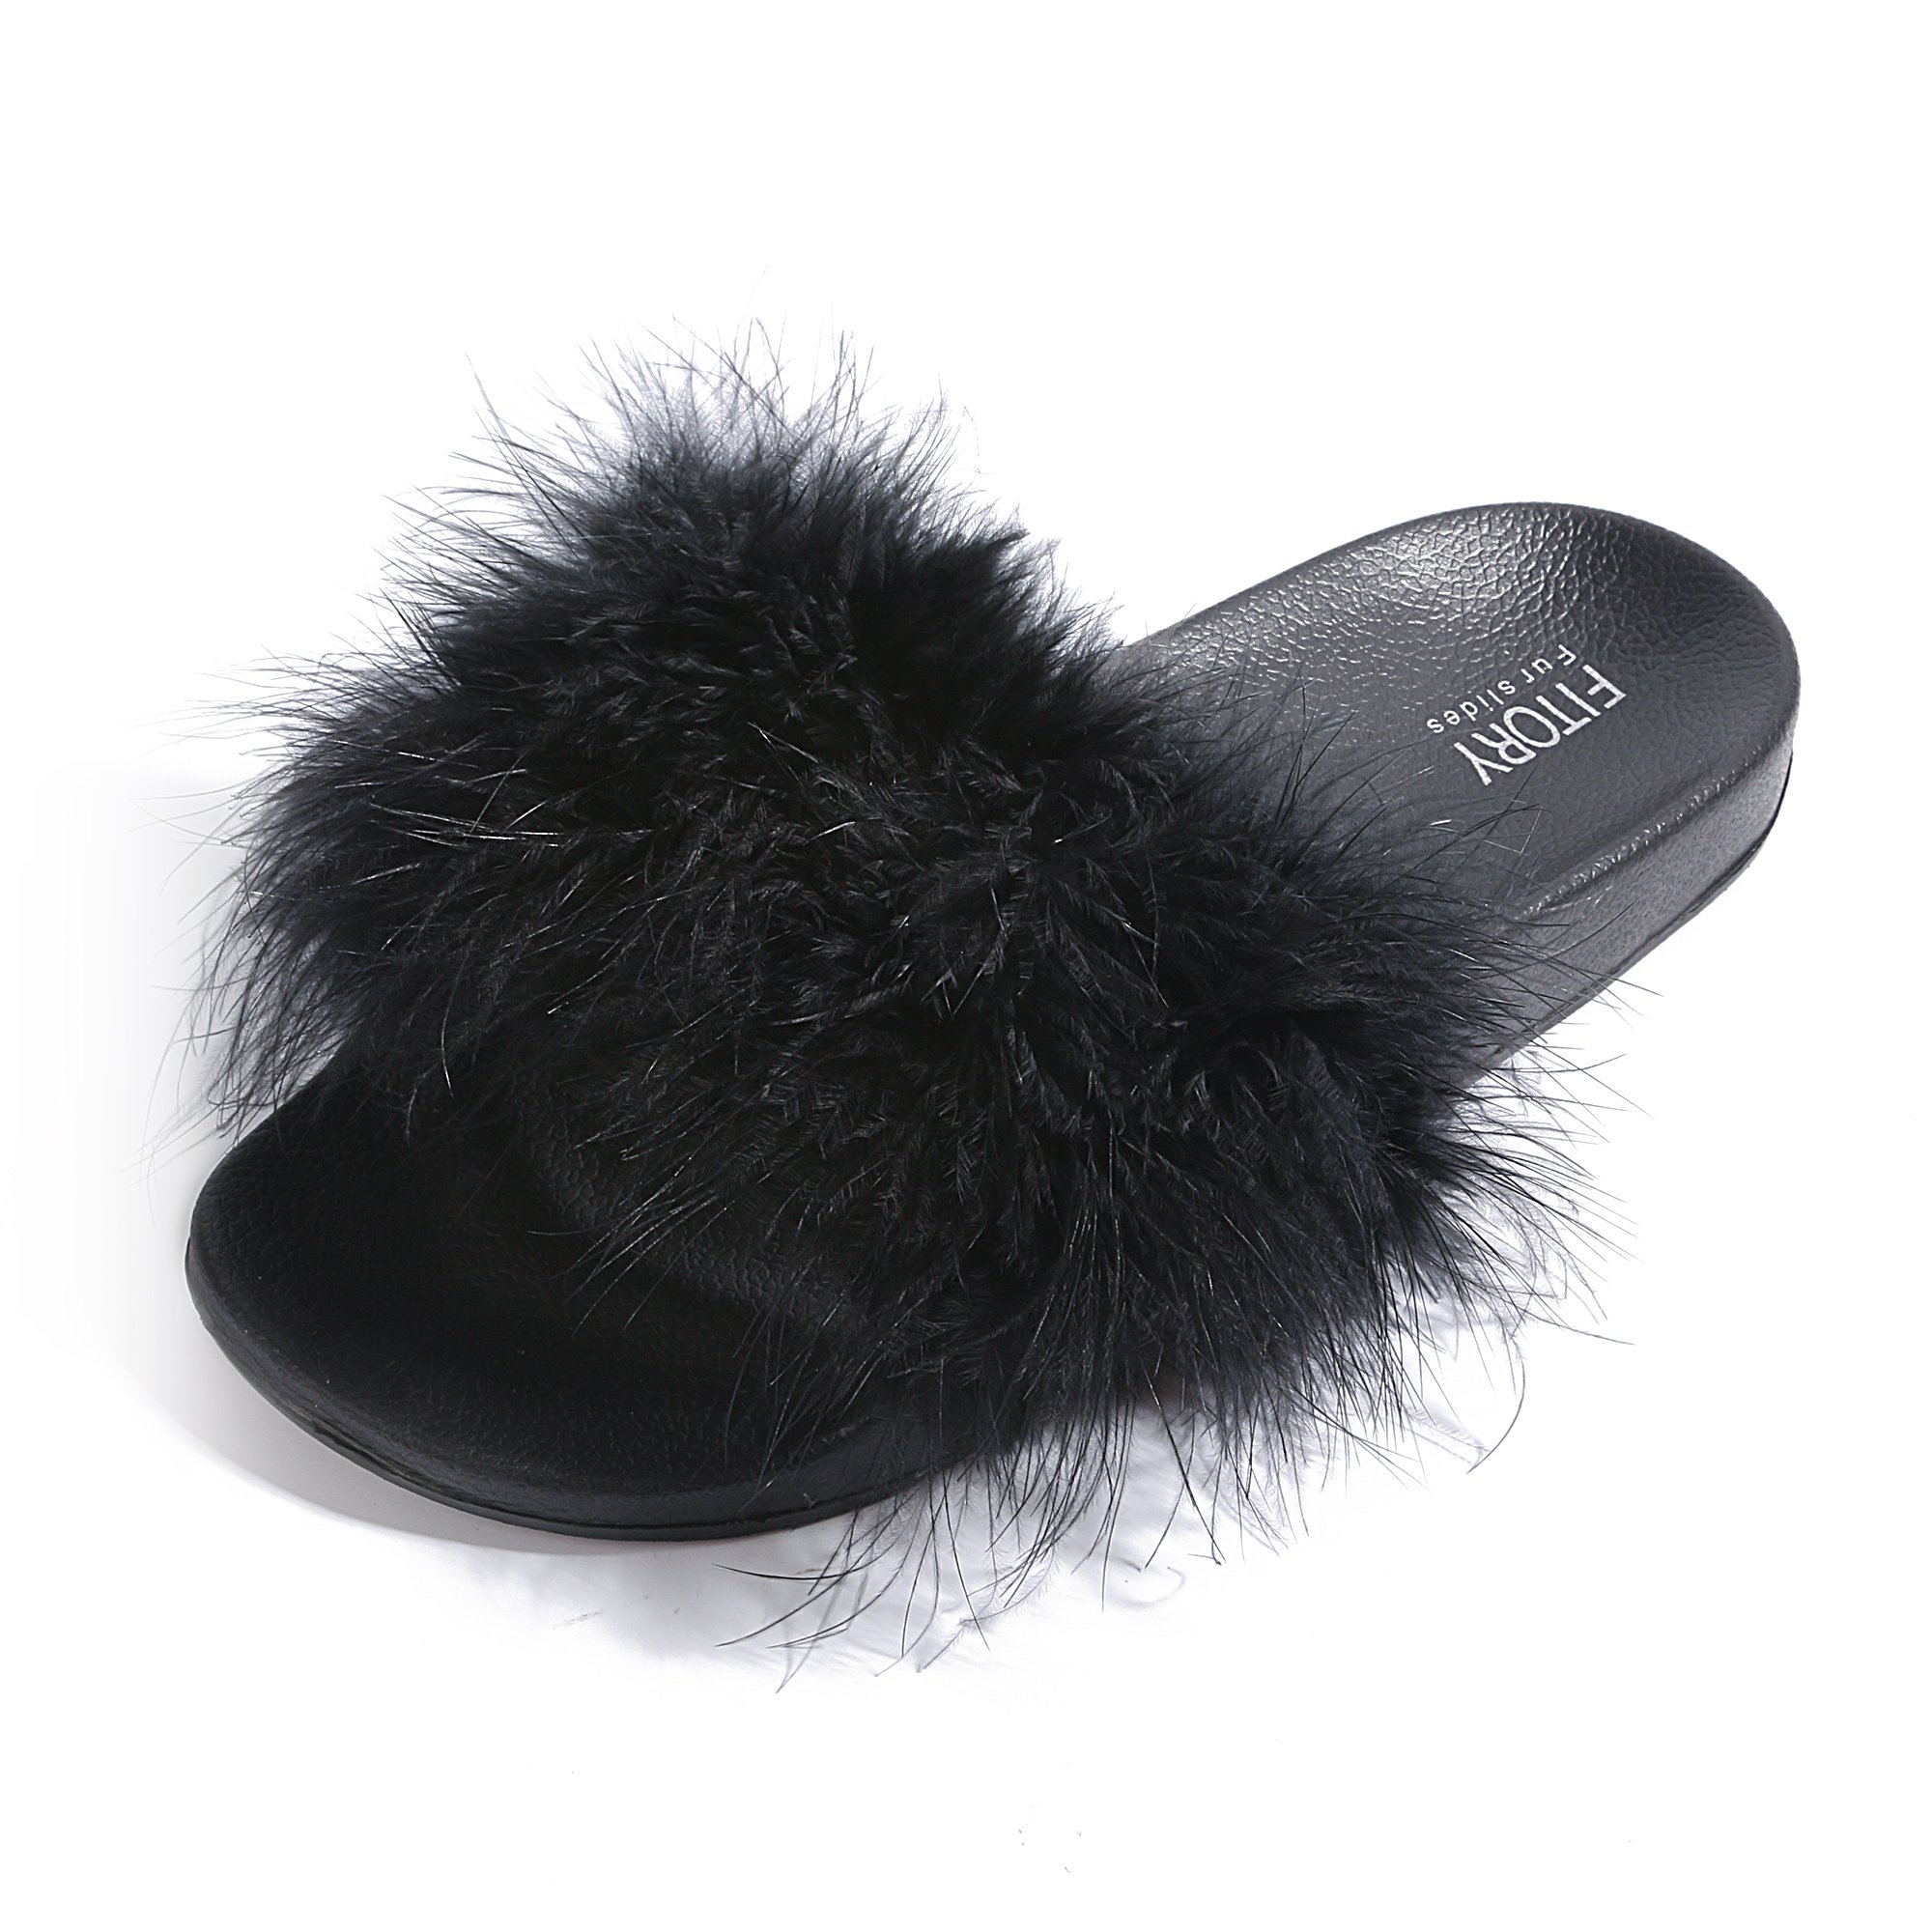 Slides for Womens Faux Fur Fuzzy Slippers with Arch Support in Flat Sandals Girls Outdoor Indoor Shoe, Black ,9-10 B(M) US